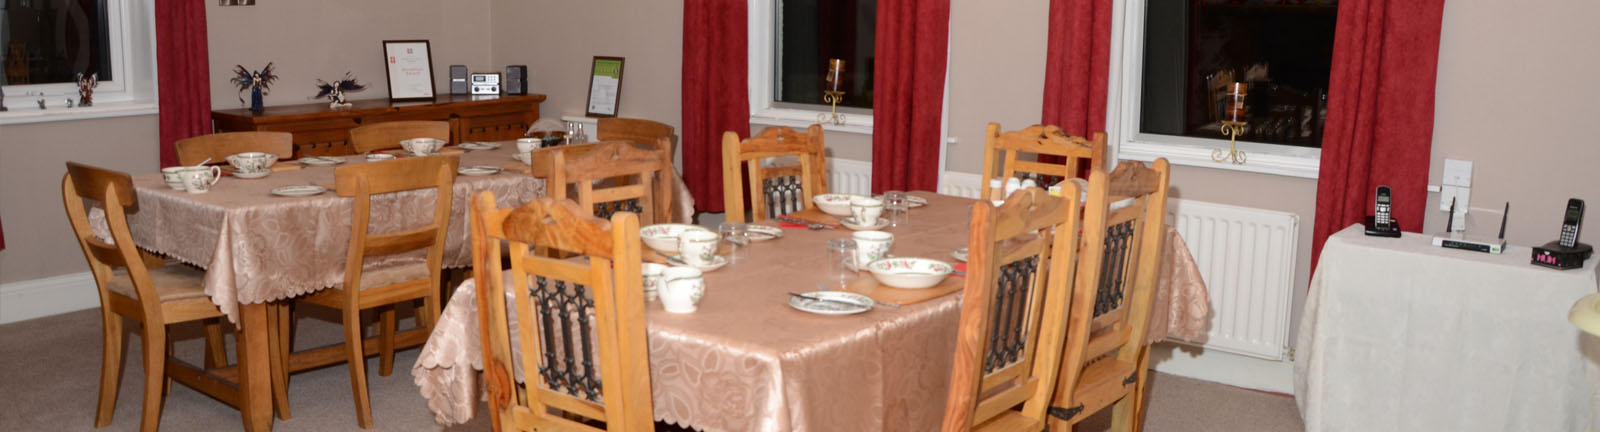 Bed And Breakfast In Whitby